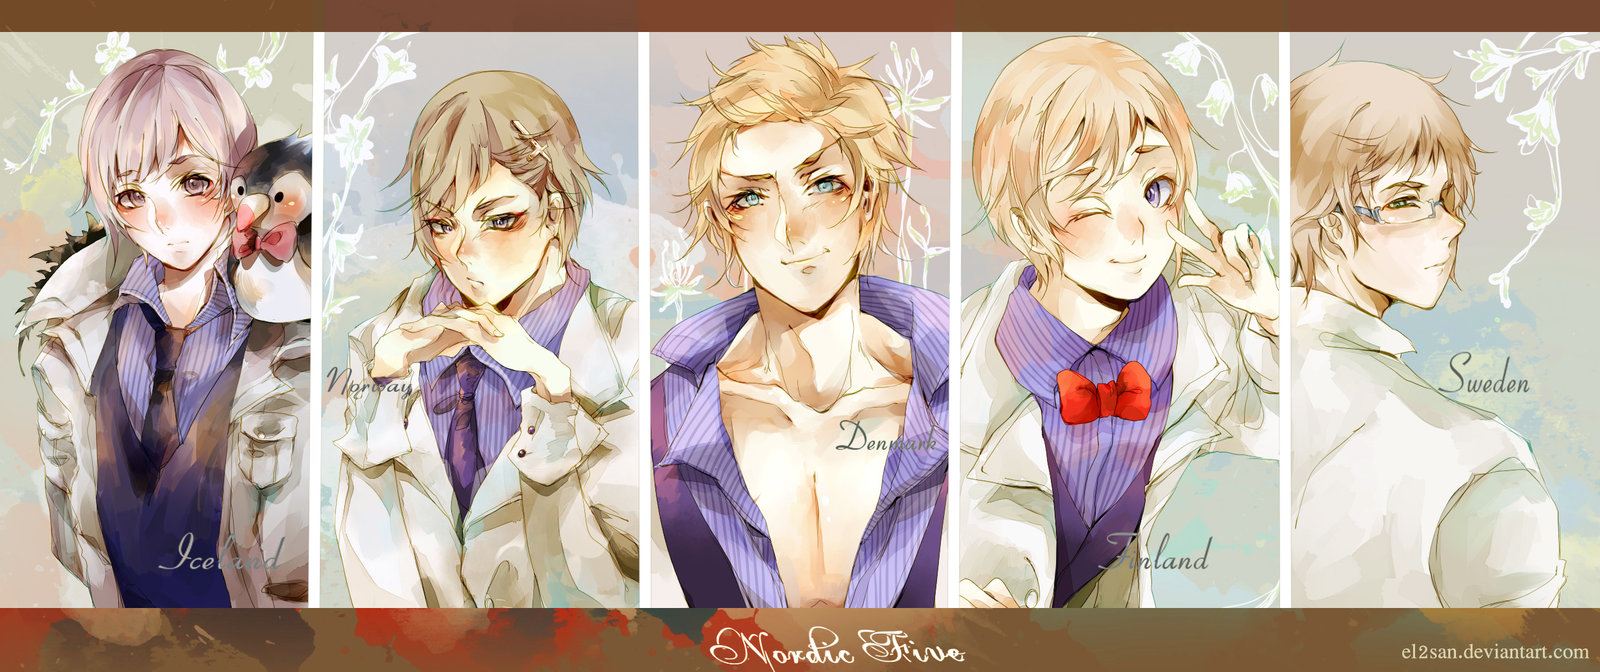 Nordics Hetalia Wallpaper Nordic five by el2san 1600x672